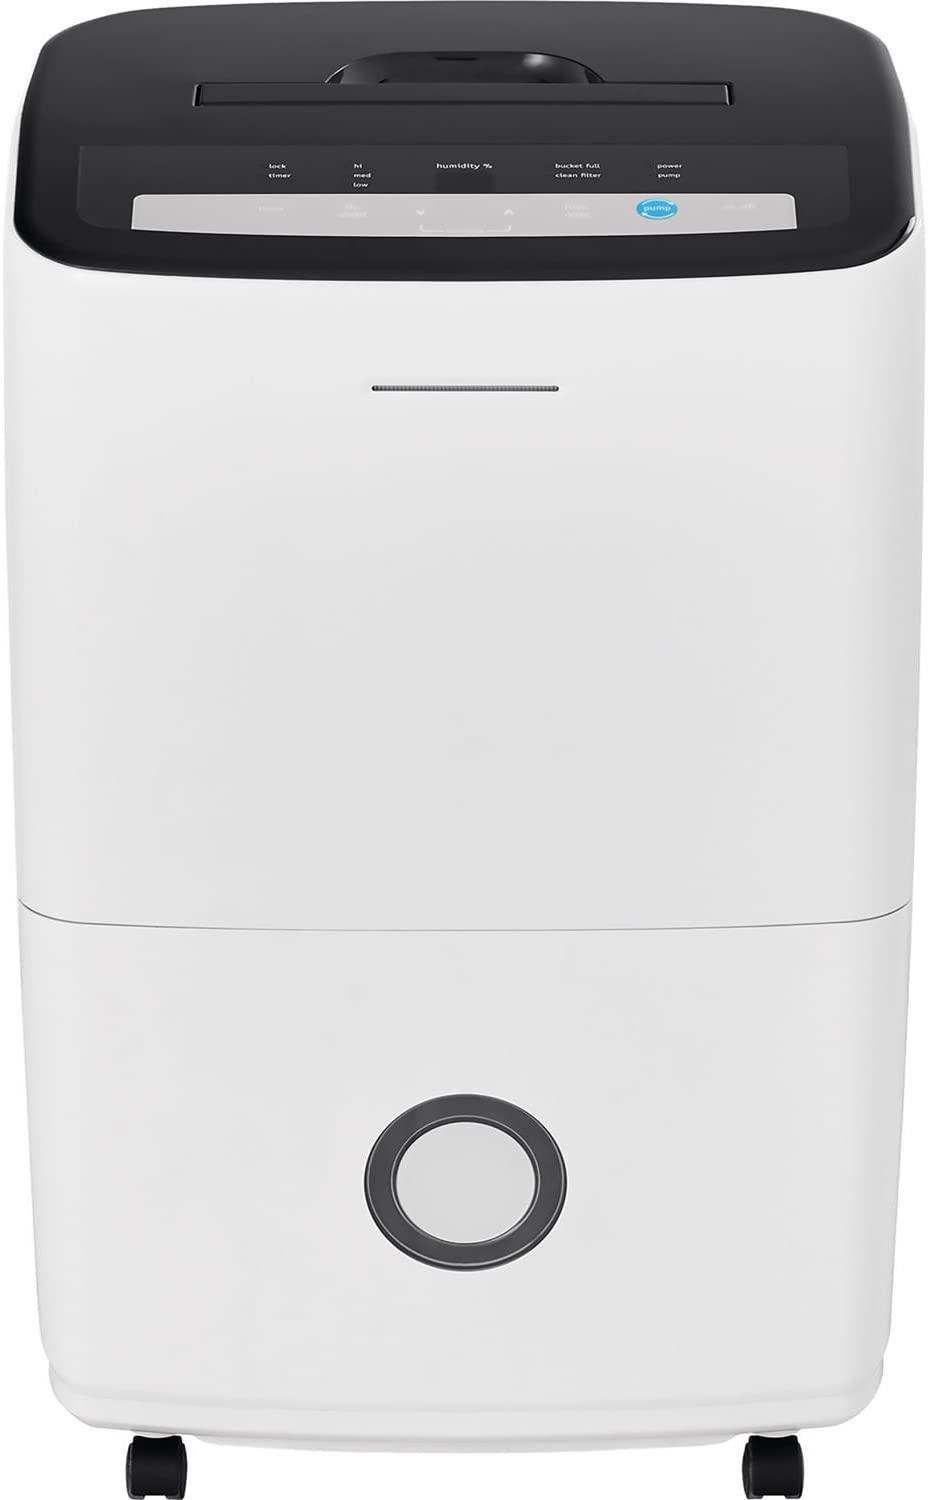 Frigidaire FFAP7033T1 Dehumidifier with Built in pump review